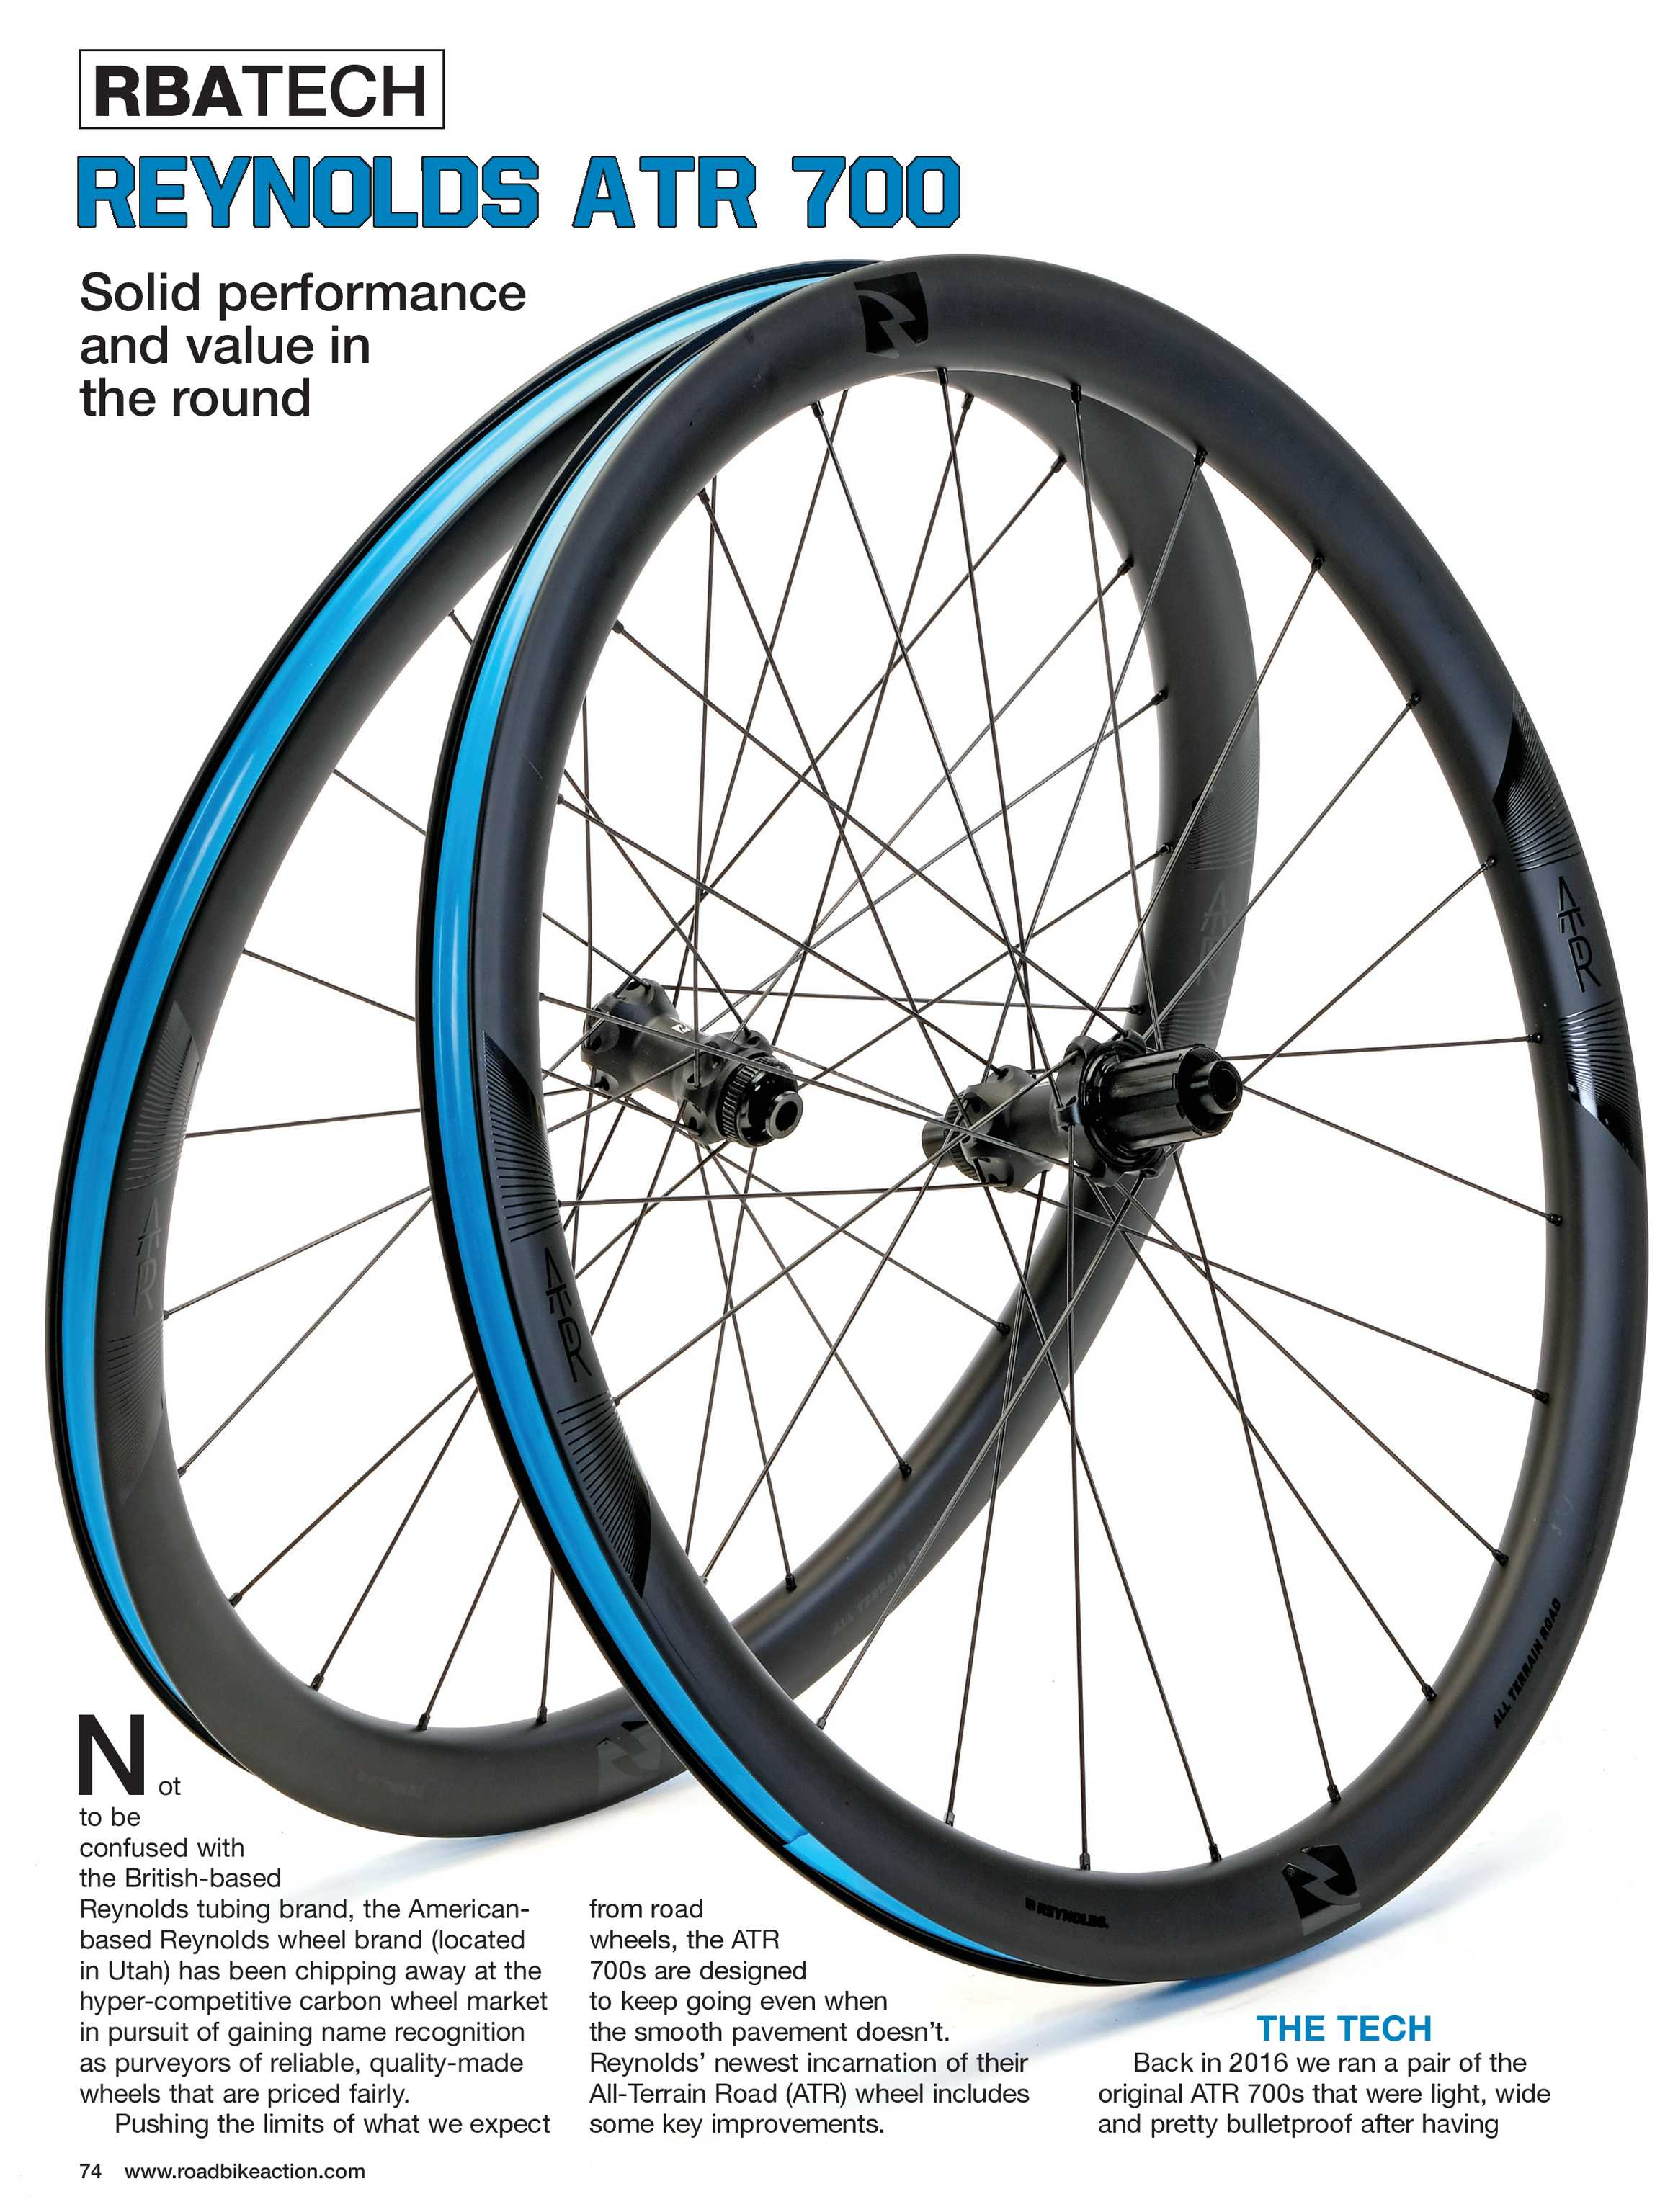 Road Bike Action Magazine - NOVEMBER 2018 - page 74